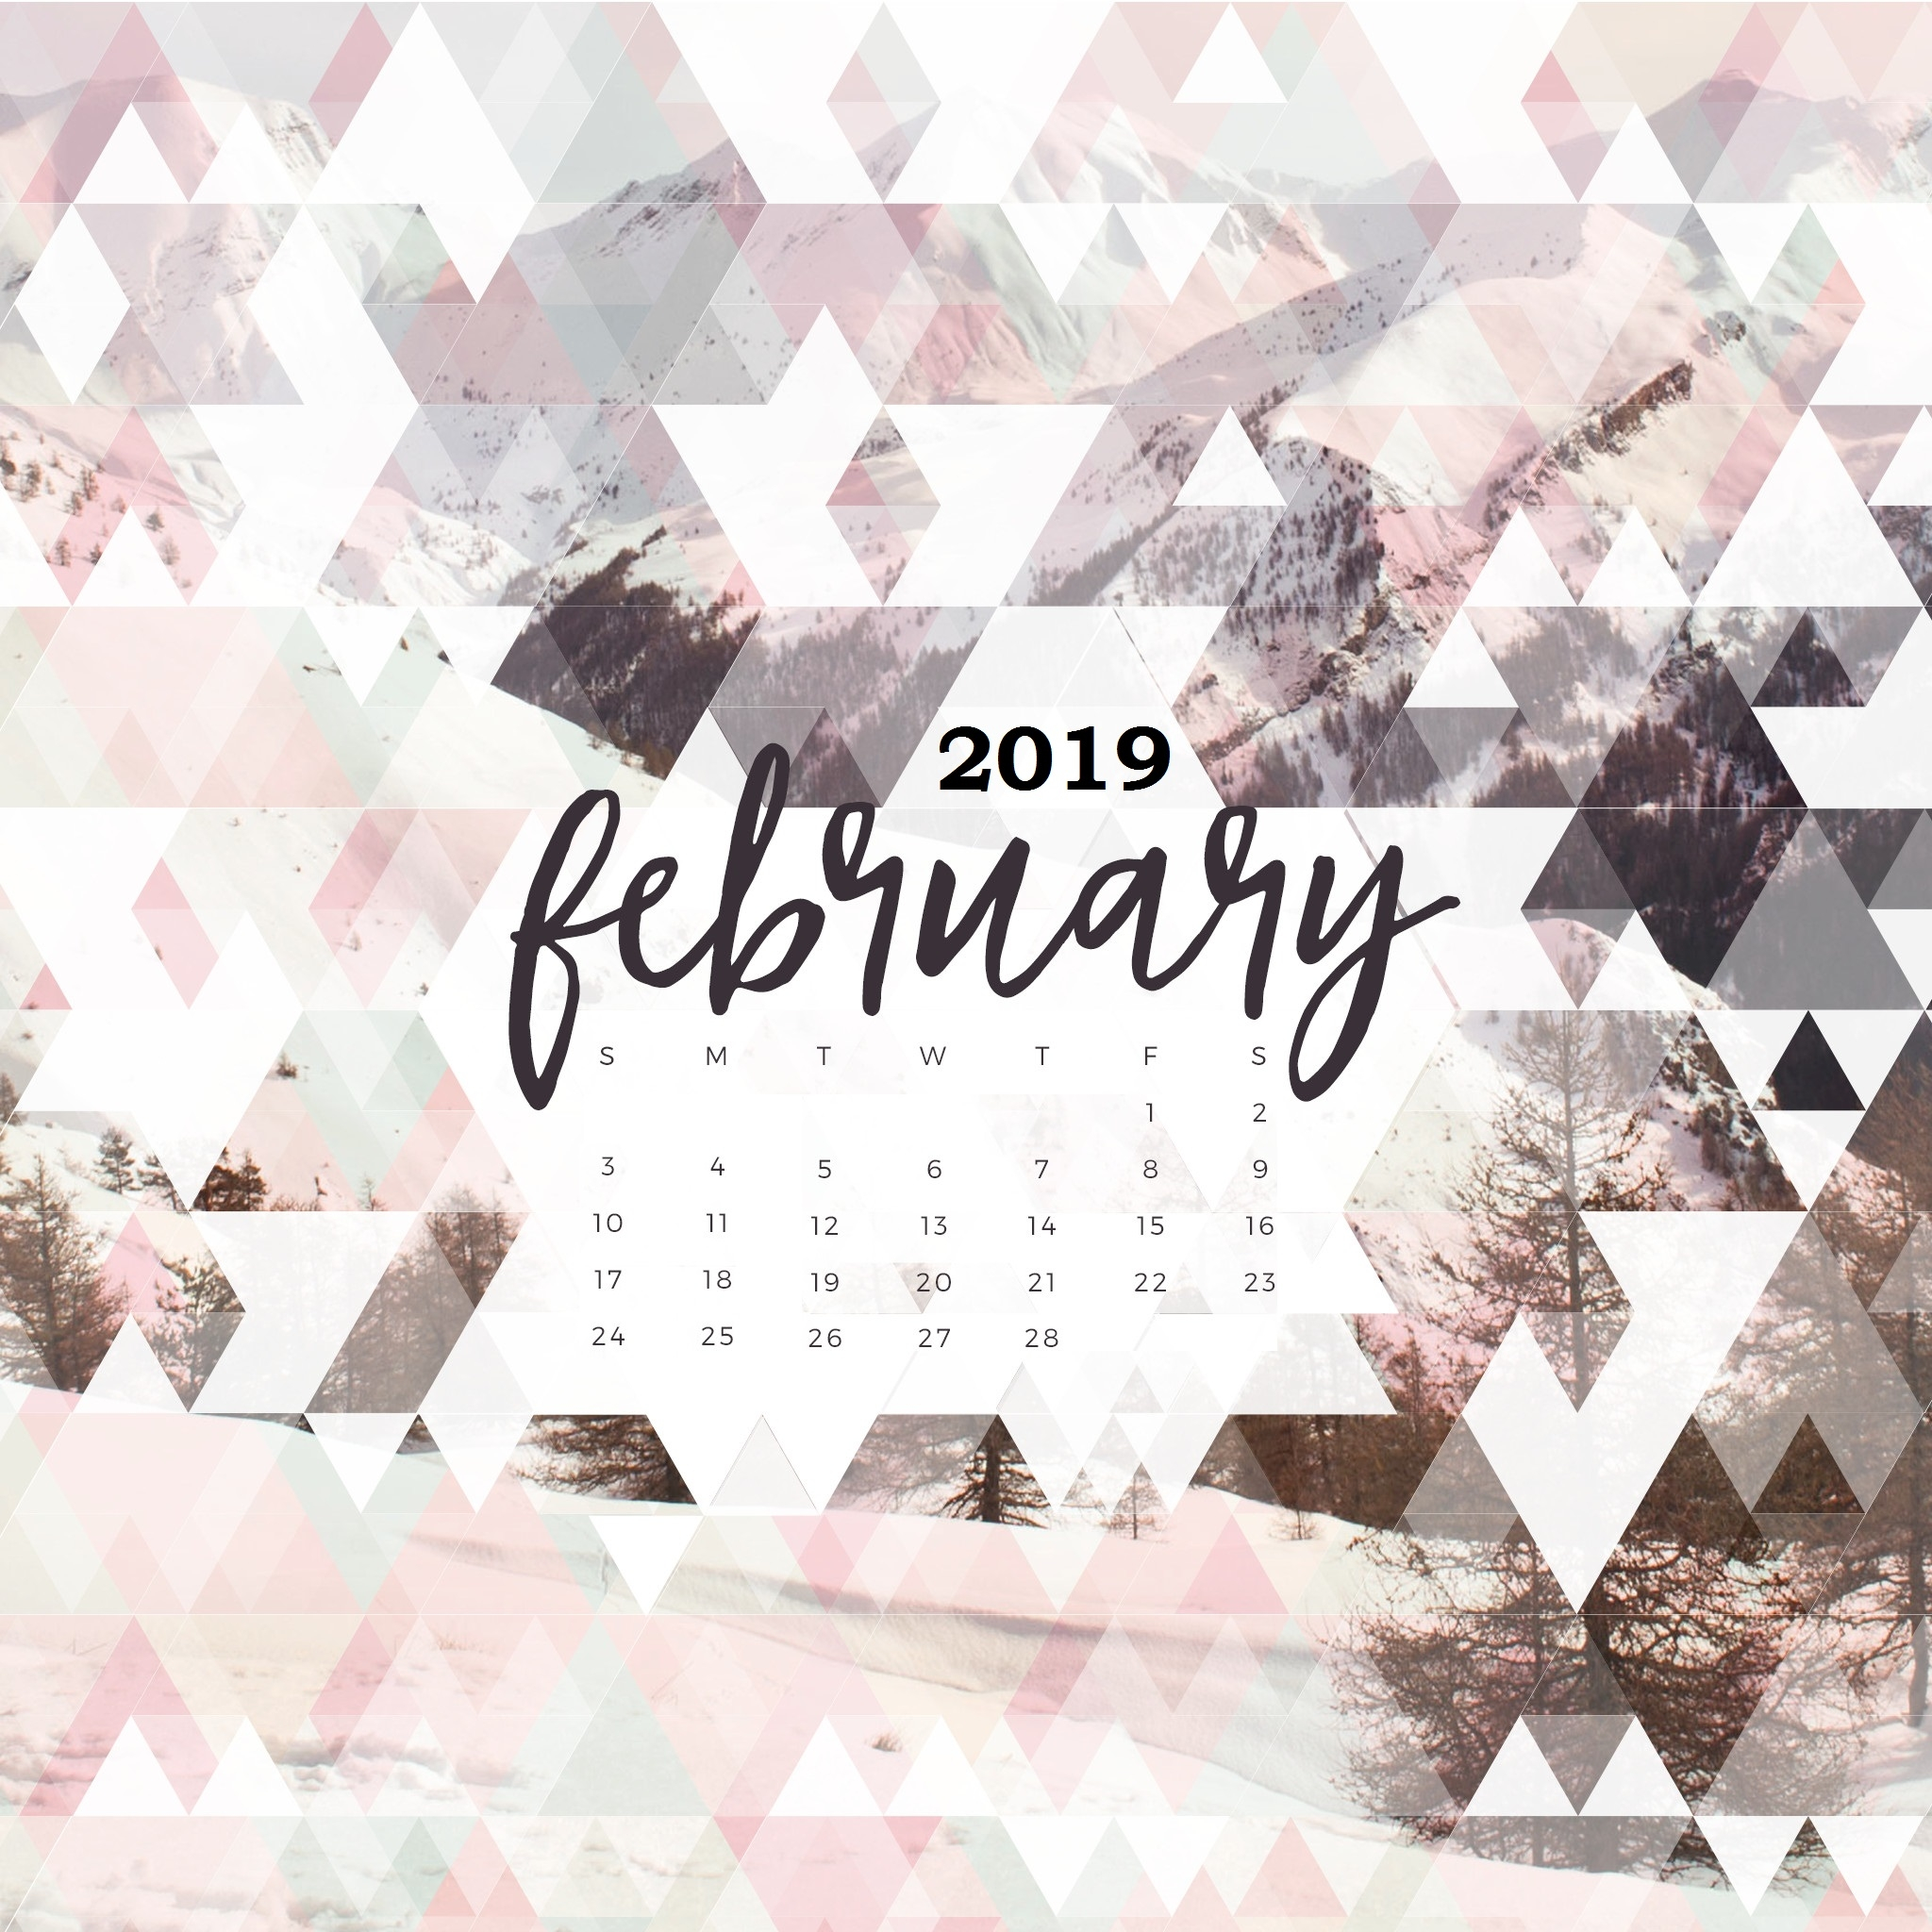 february 2019 calendar wallpapers calendar 2019::February 2019 iPhone Calendar Wallpaper